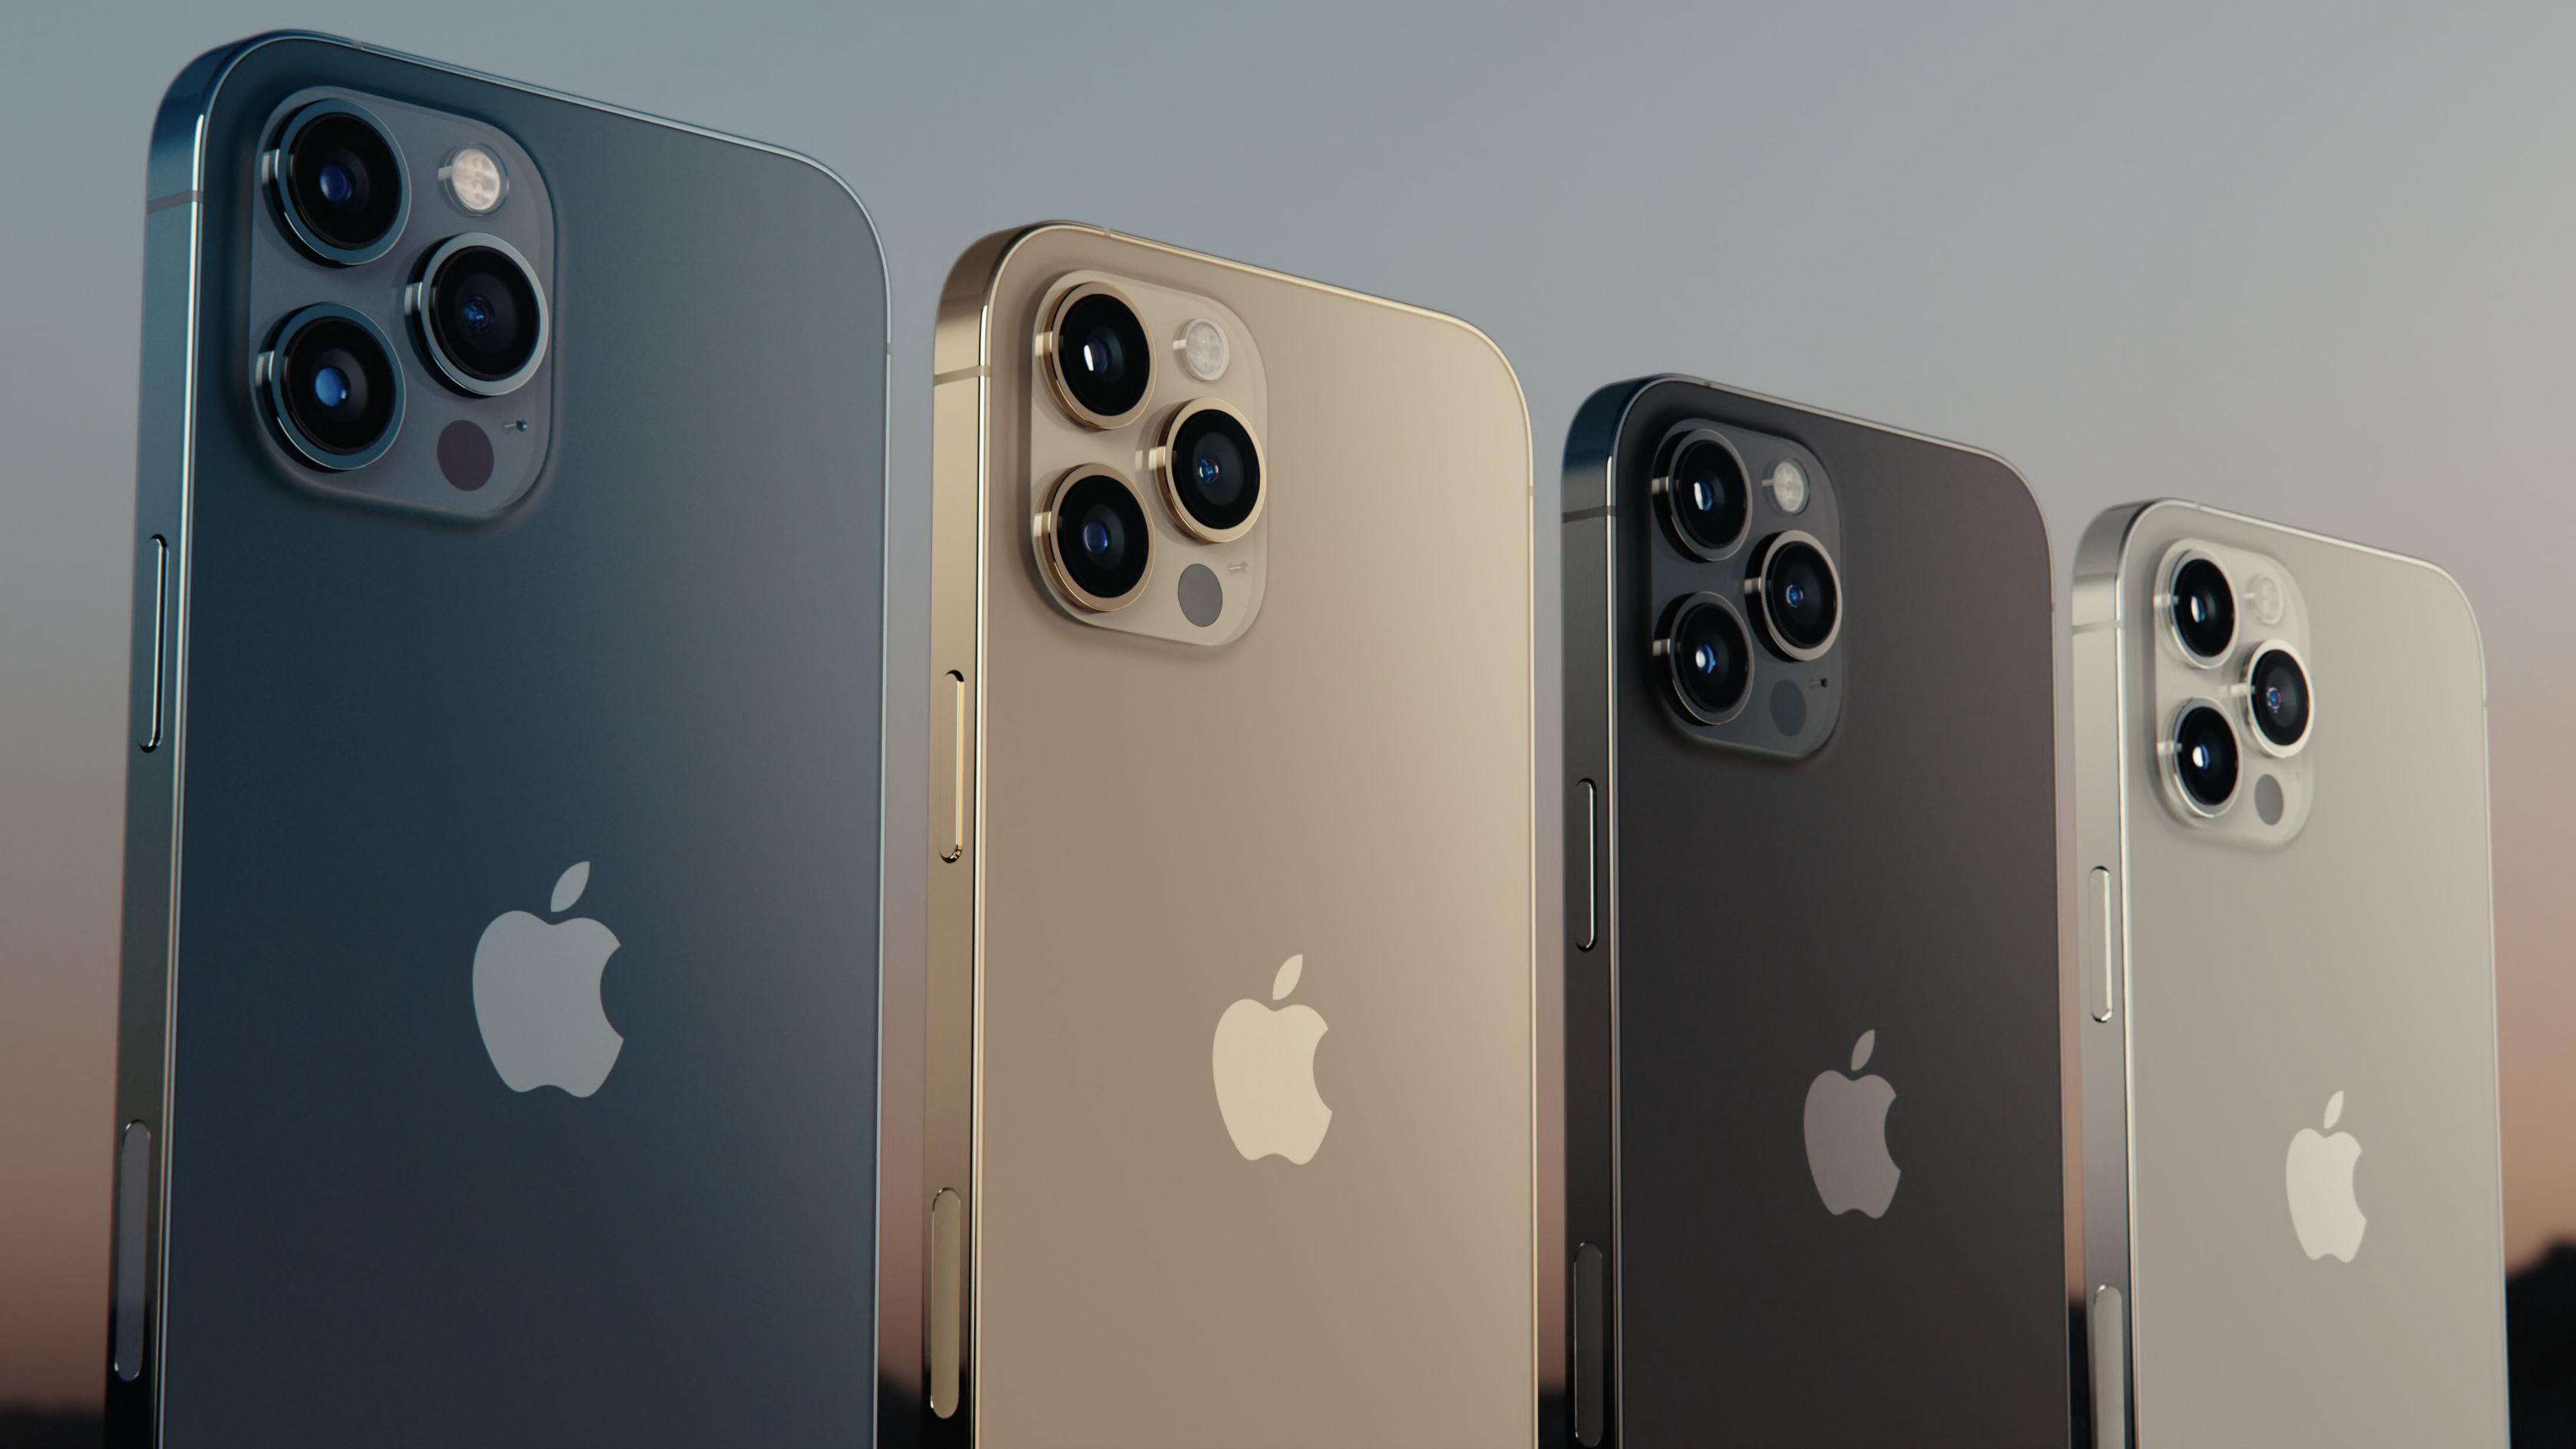 Apple announces four iPhone 12 Models Ushering a new era for iPhone with 5G - Tatahfonewsarena